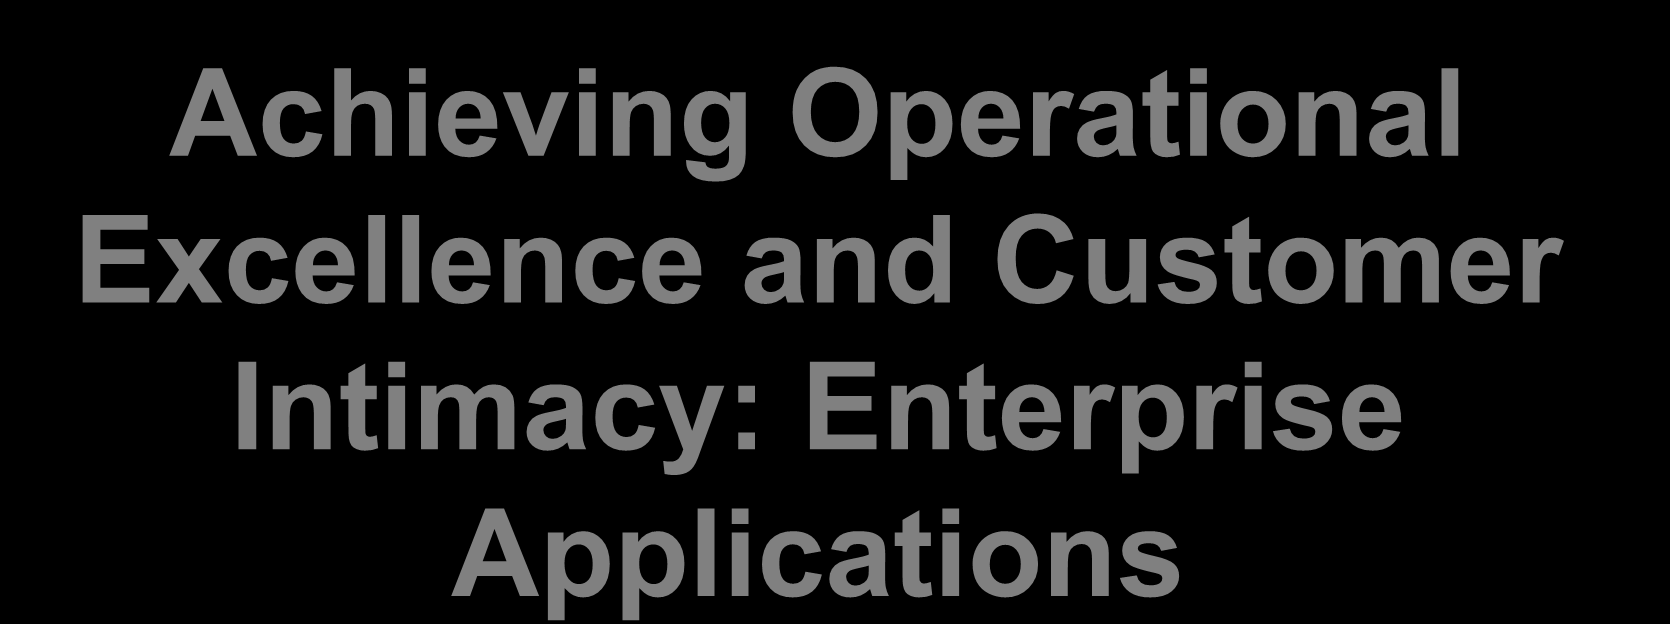 Chapter 9 Achieving Operational Excellence and Customer Intimacy: Enterprise Lecturer: Richard Boateng, PhD.